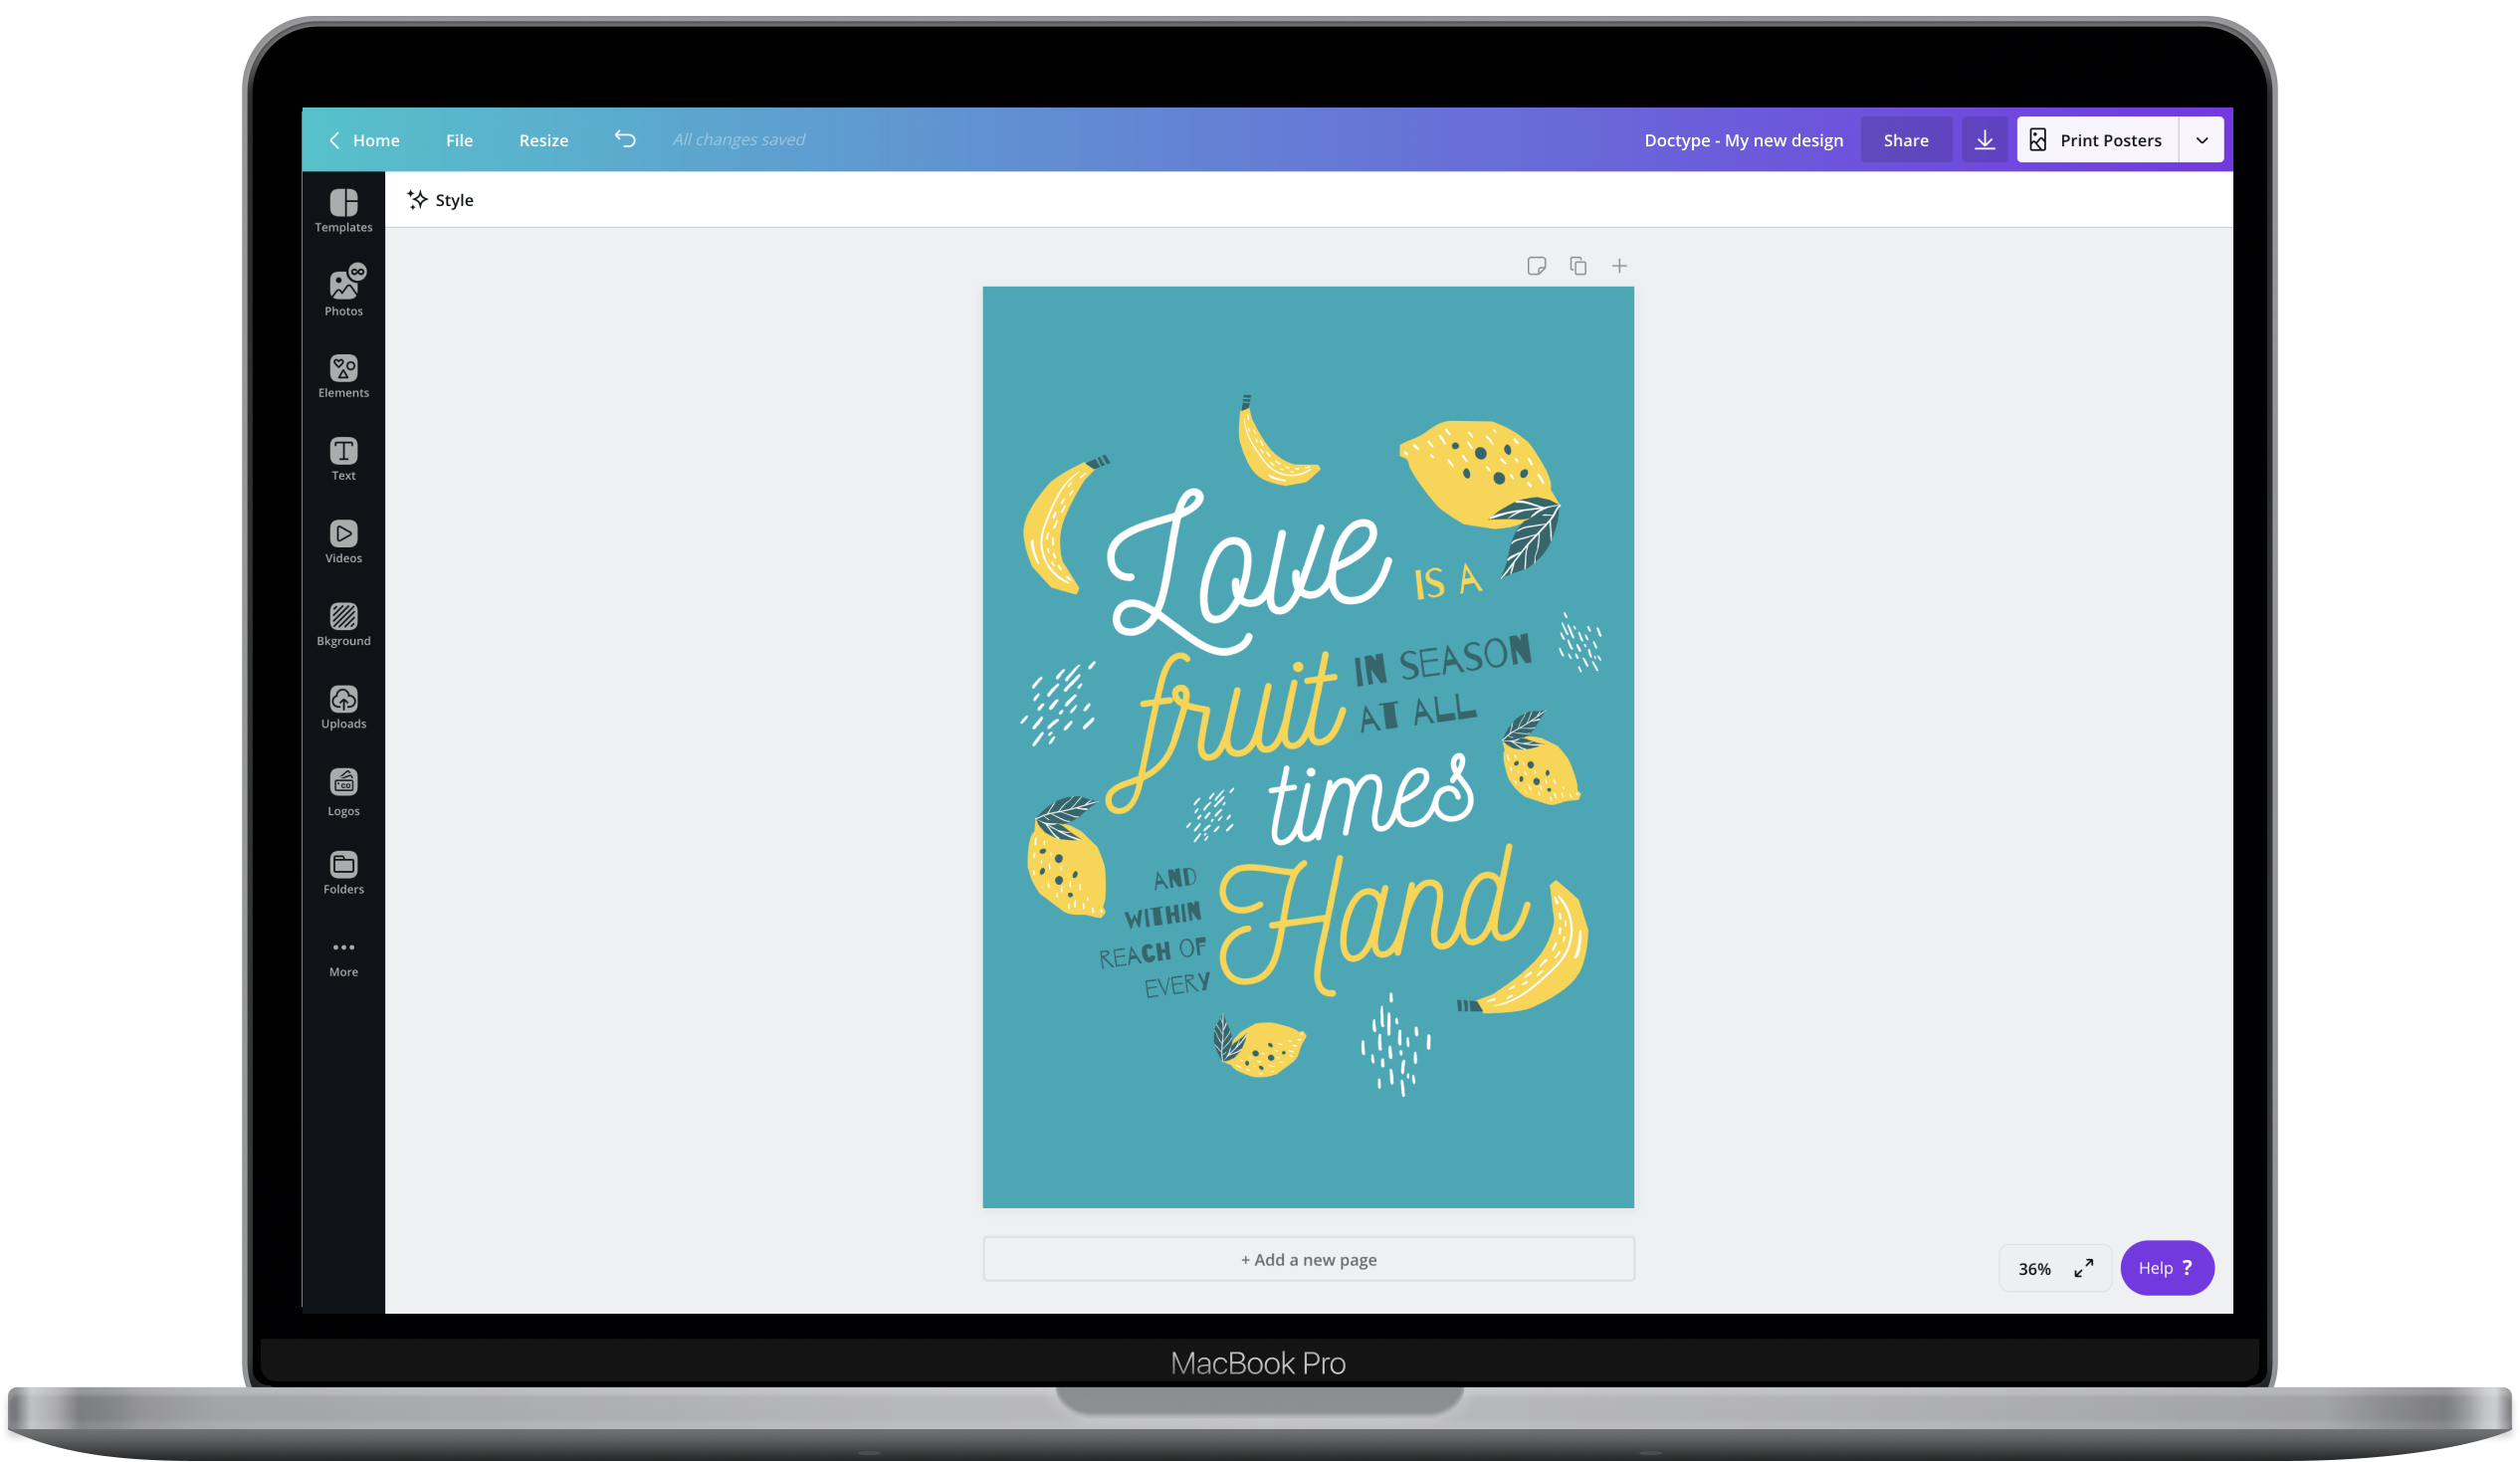 Canva editor showing a poster design